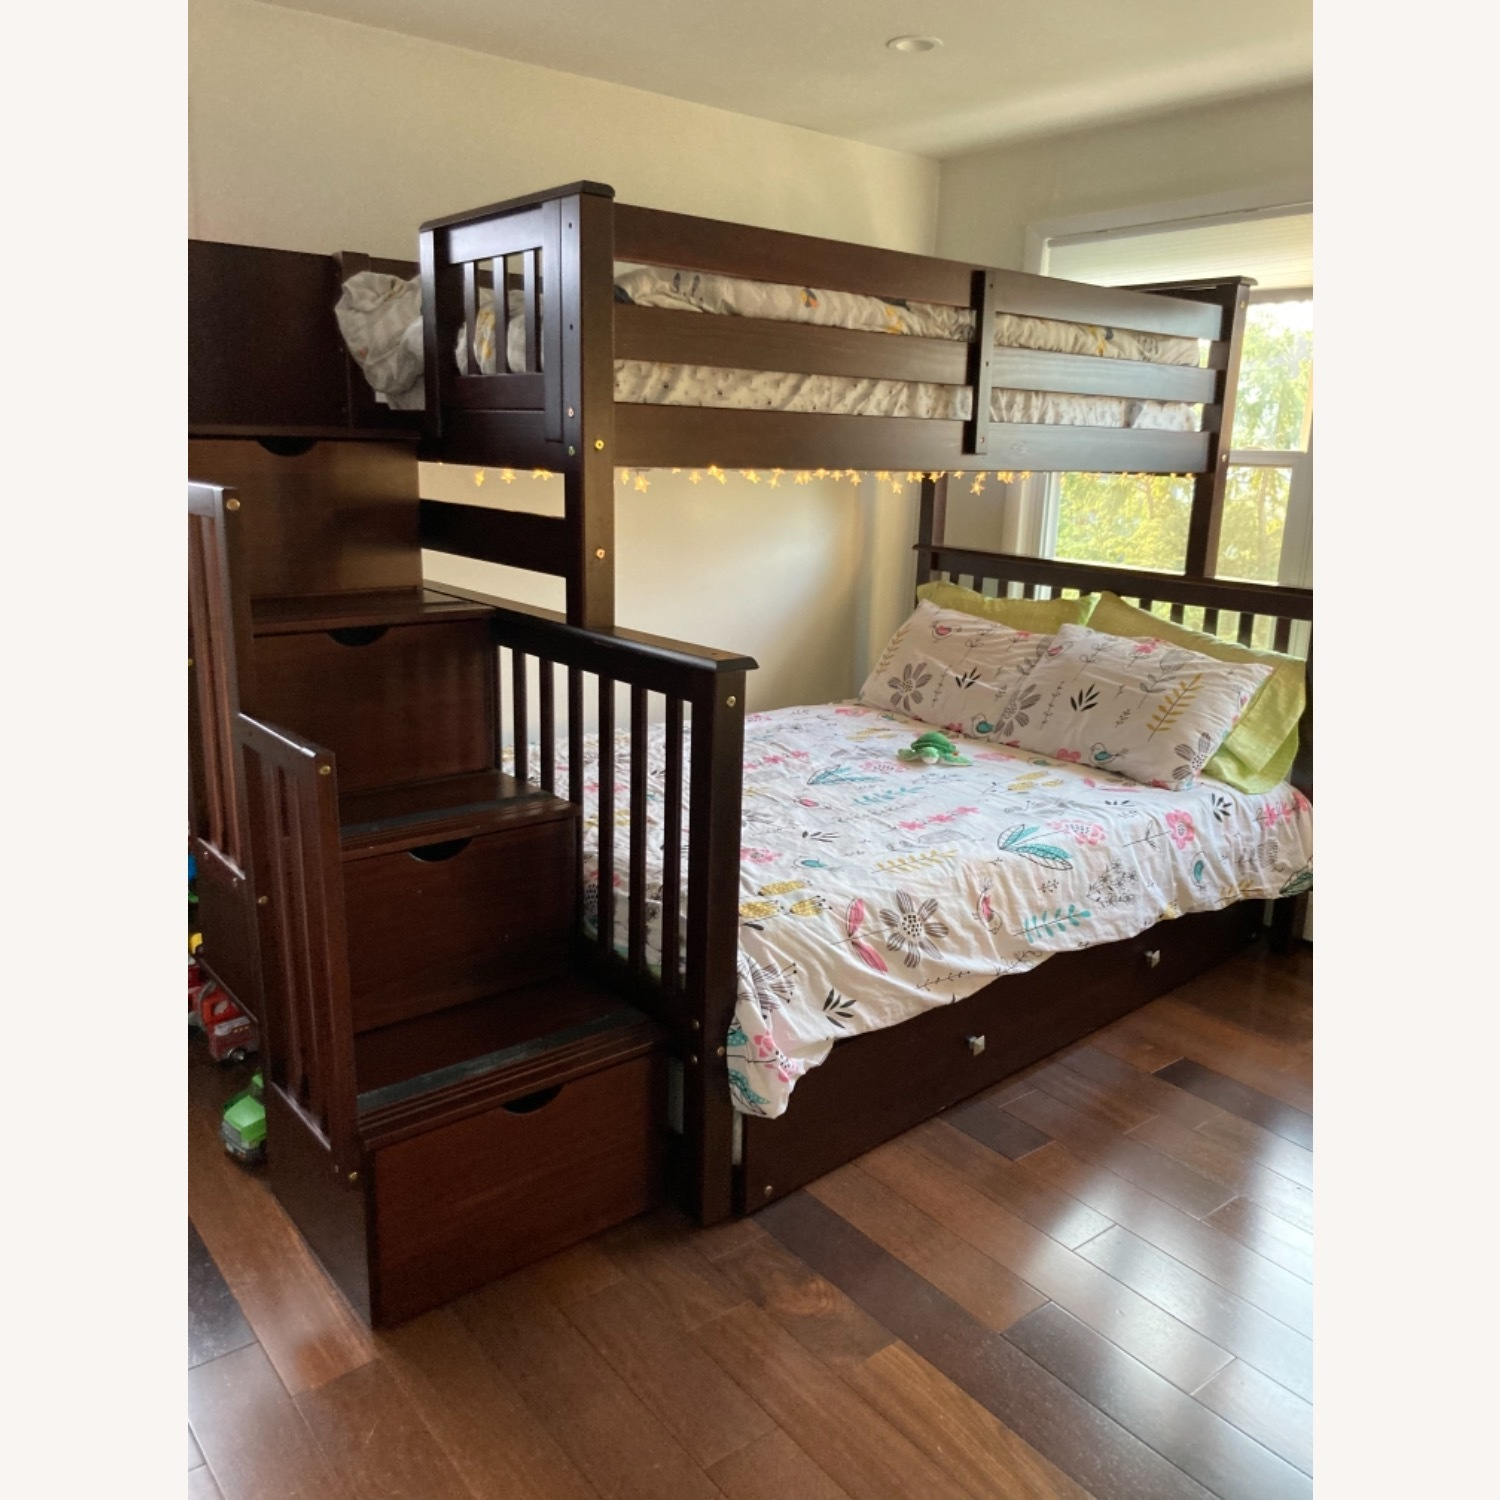 Wayfair Solid Wood Bunk Bed with Trundle, Storage - image-1